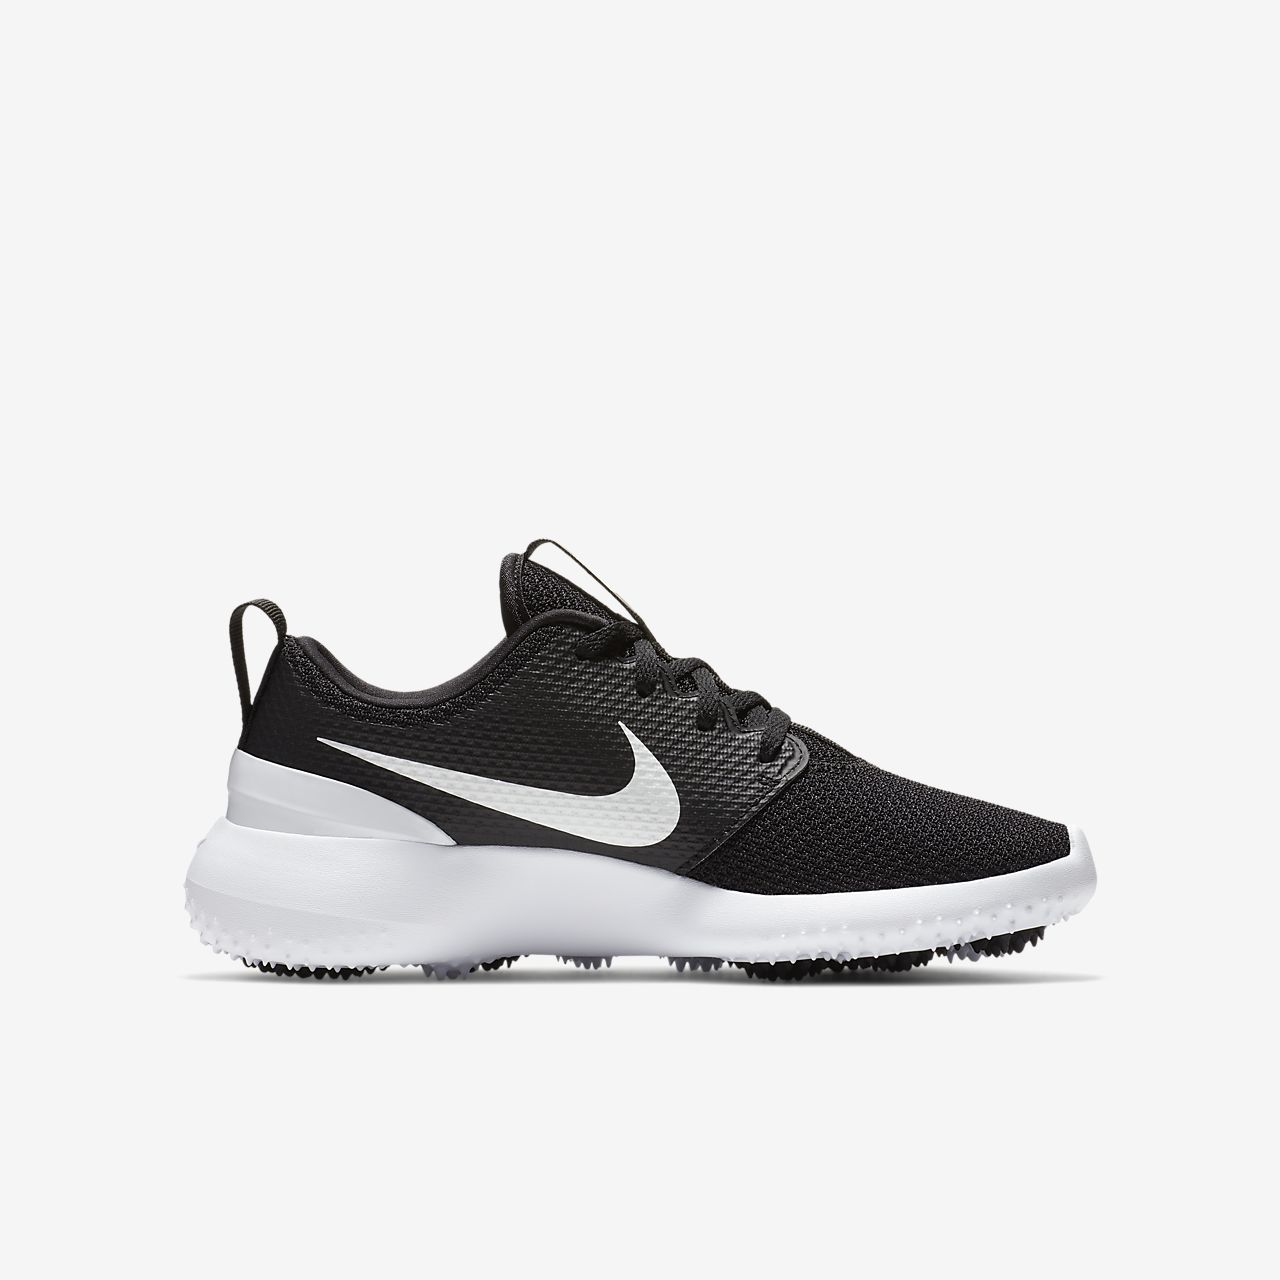 733598159f269 Nike Roshe Jr. Little Big Kids  Golf Shoe. Nike.com